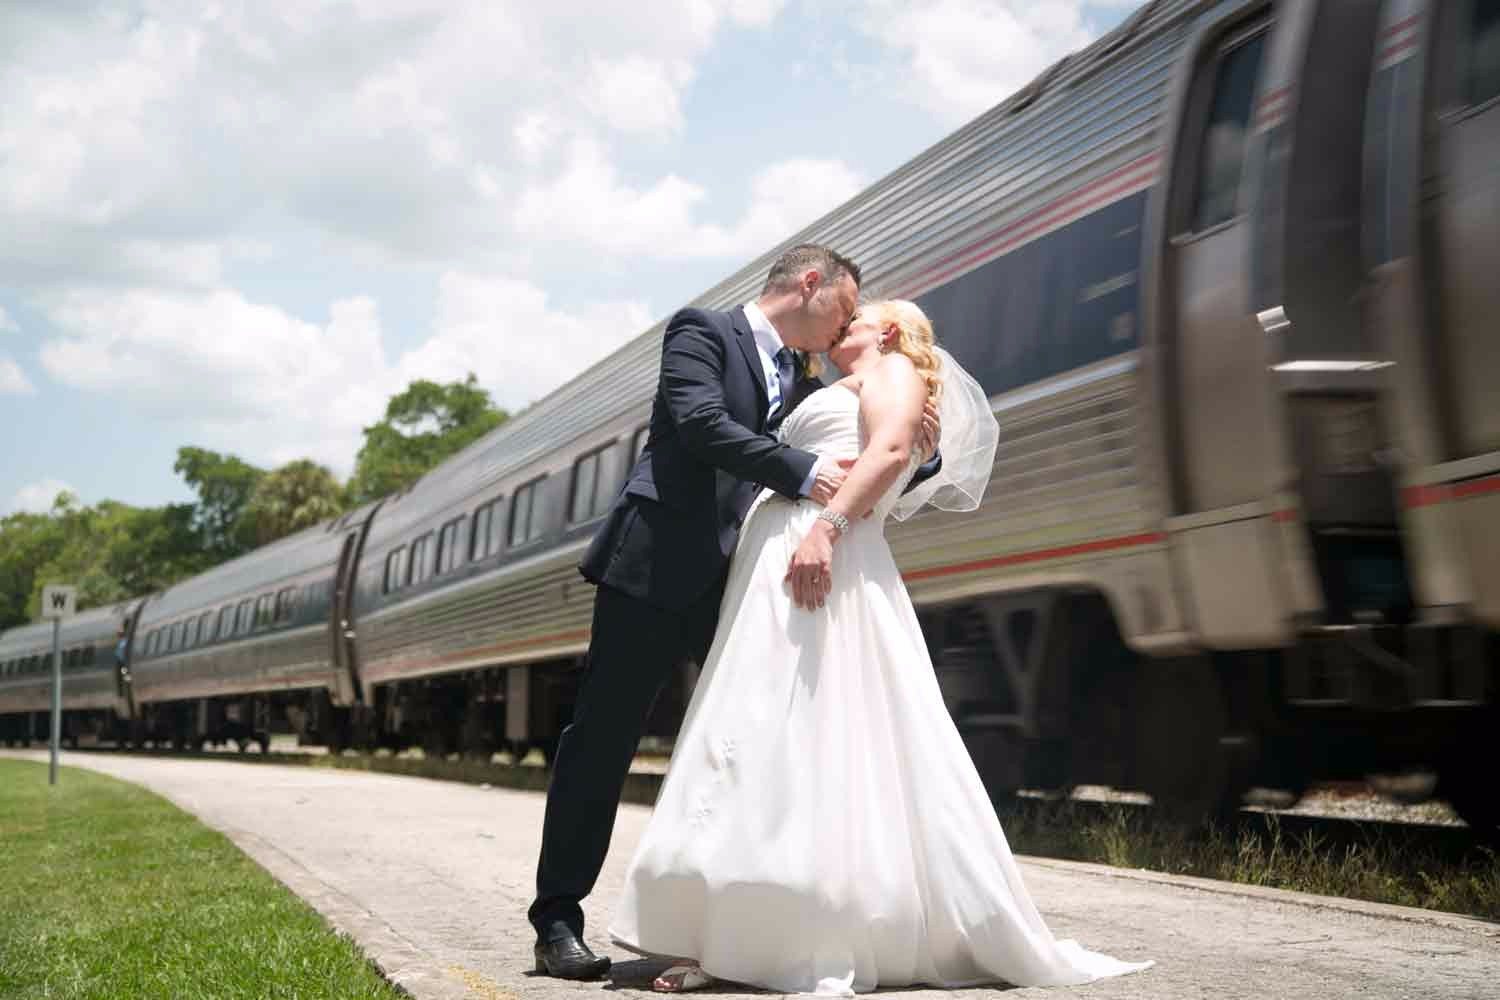 This couple got lucky for photos! We had a train pass through the station!